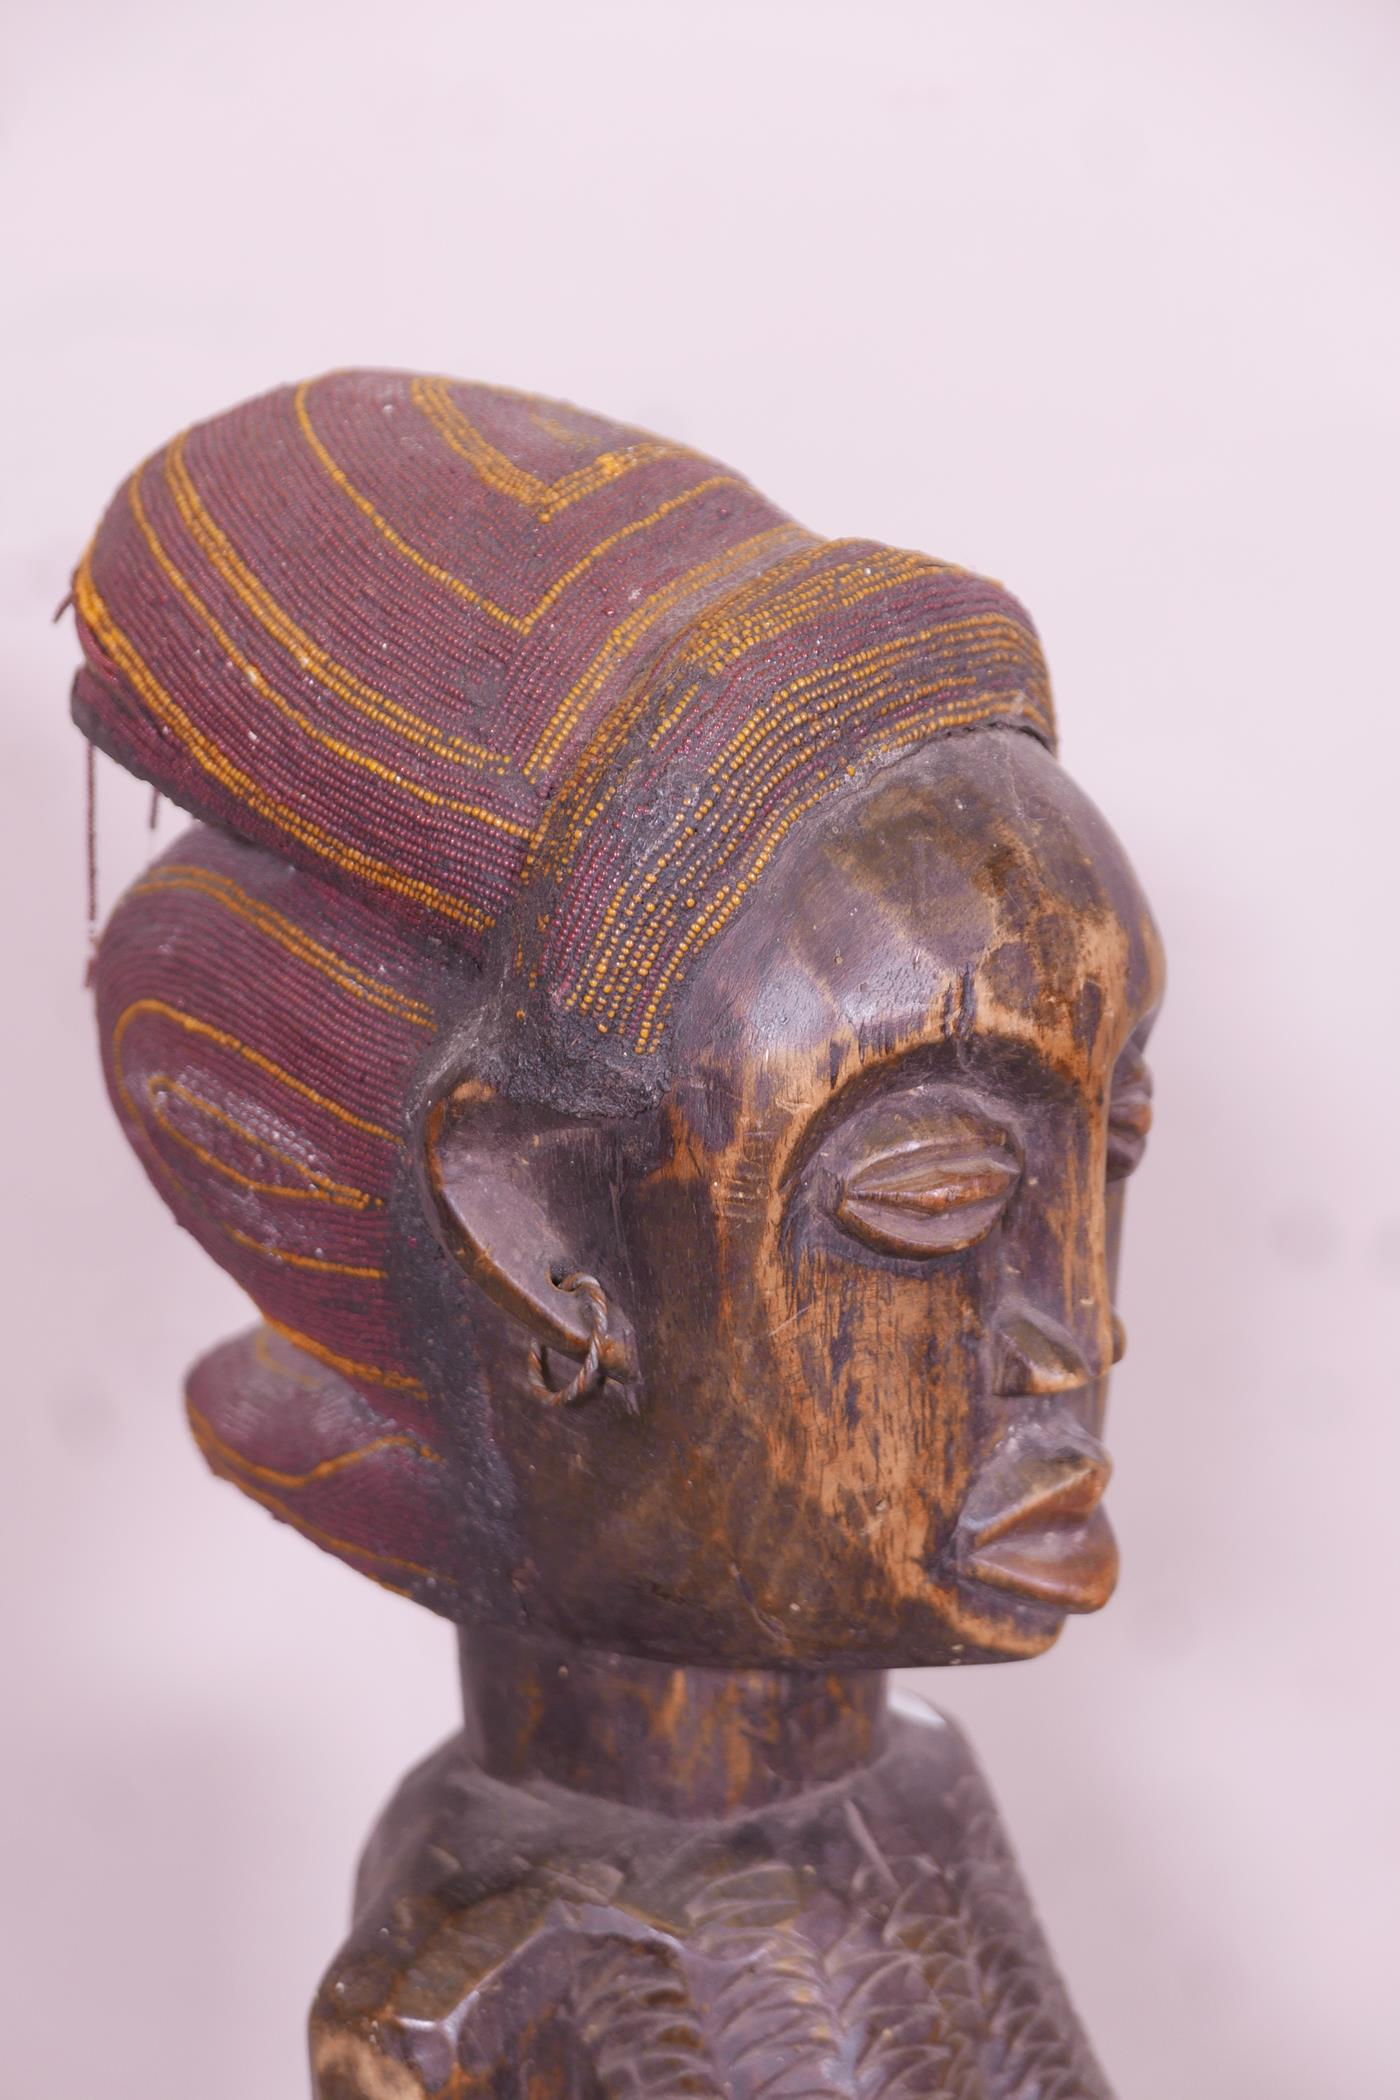 An antique African carved wood fertility figure with beaded headdress and inset with sea shells, - Image 5 of 5